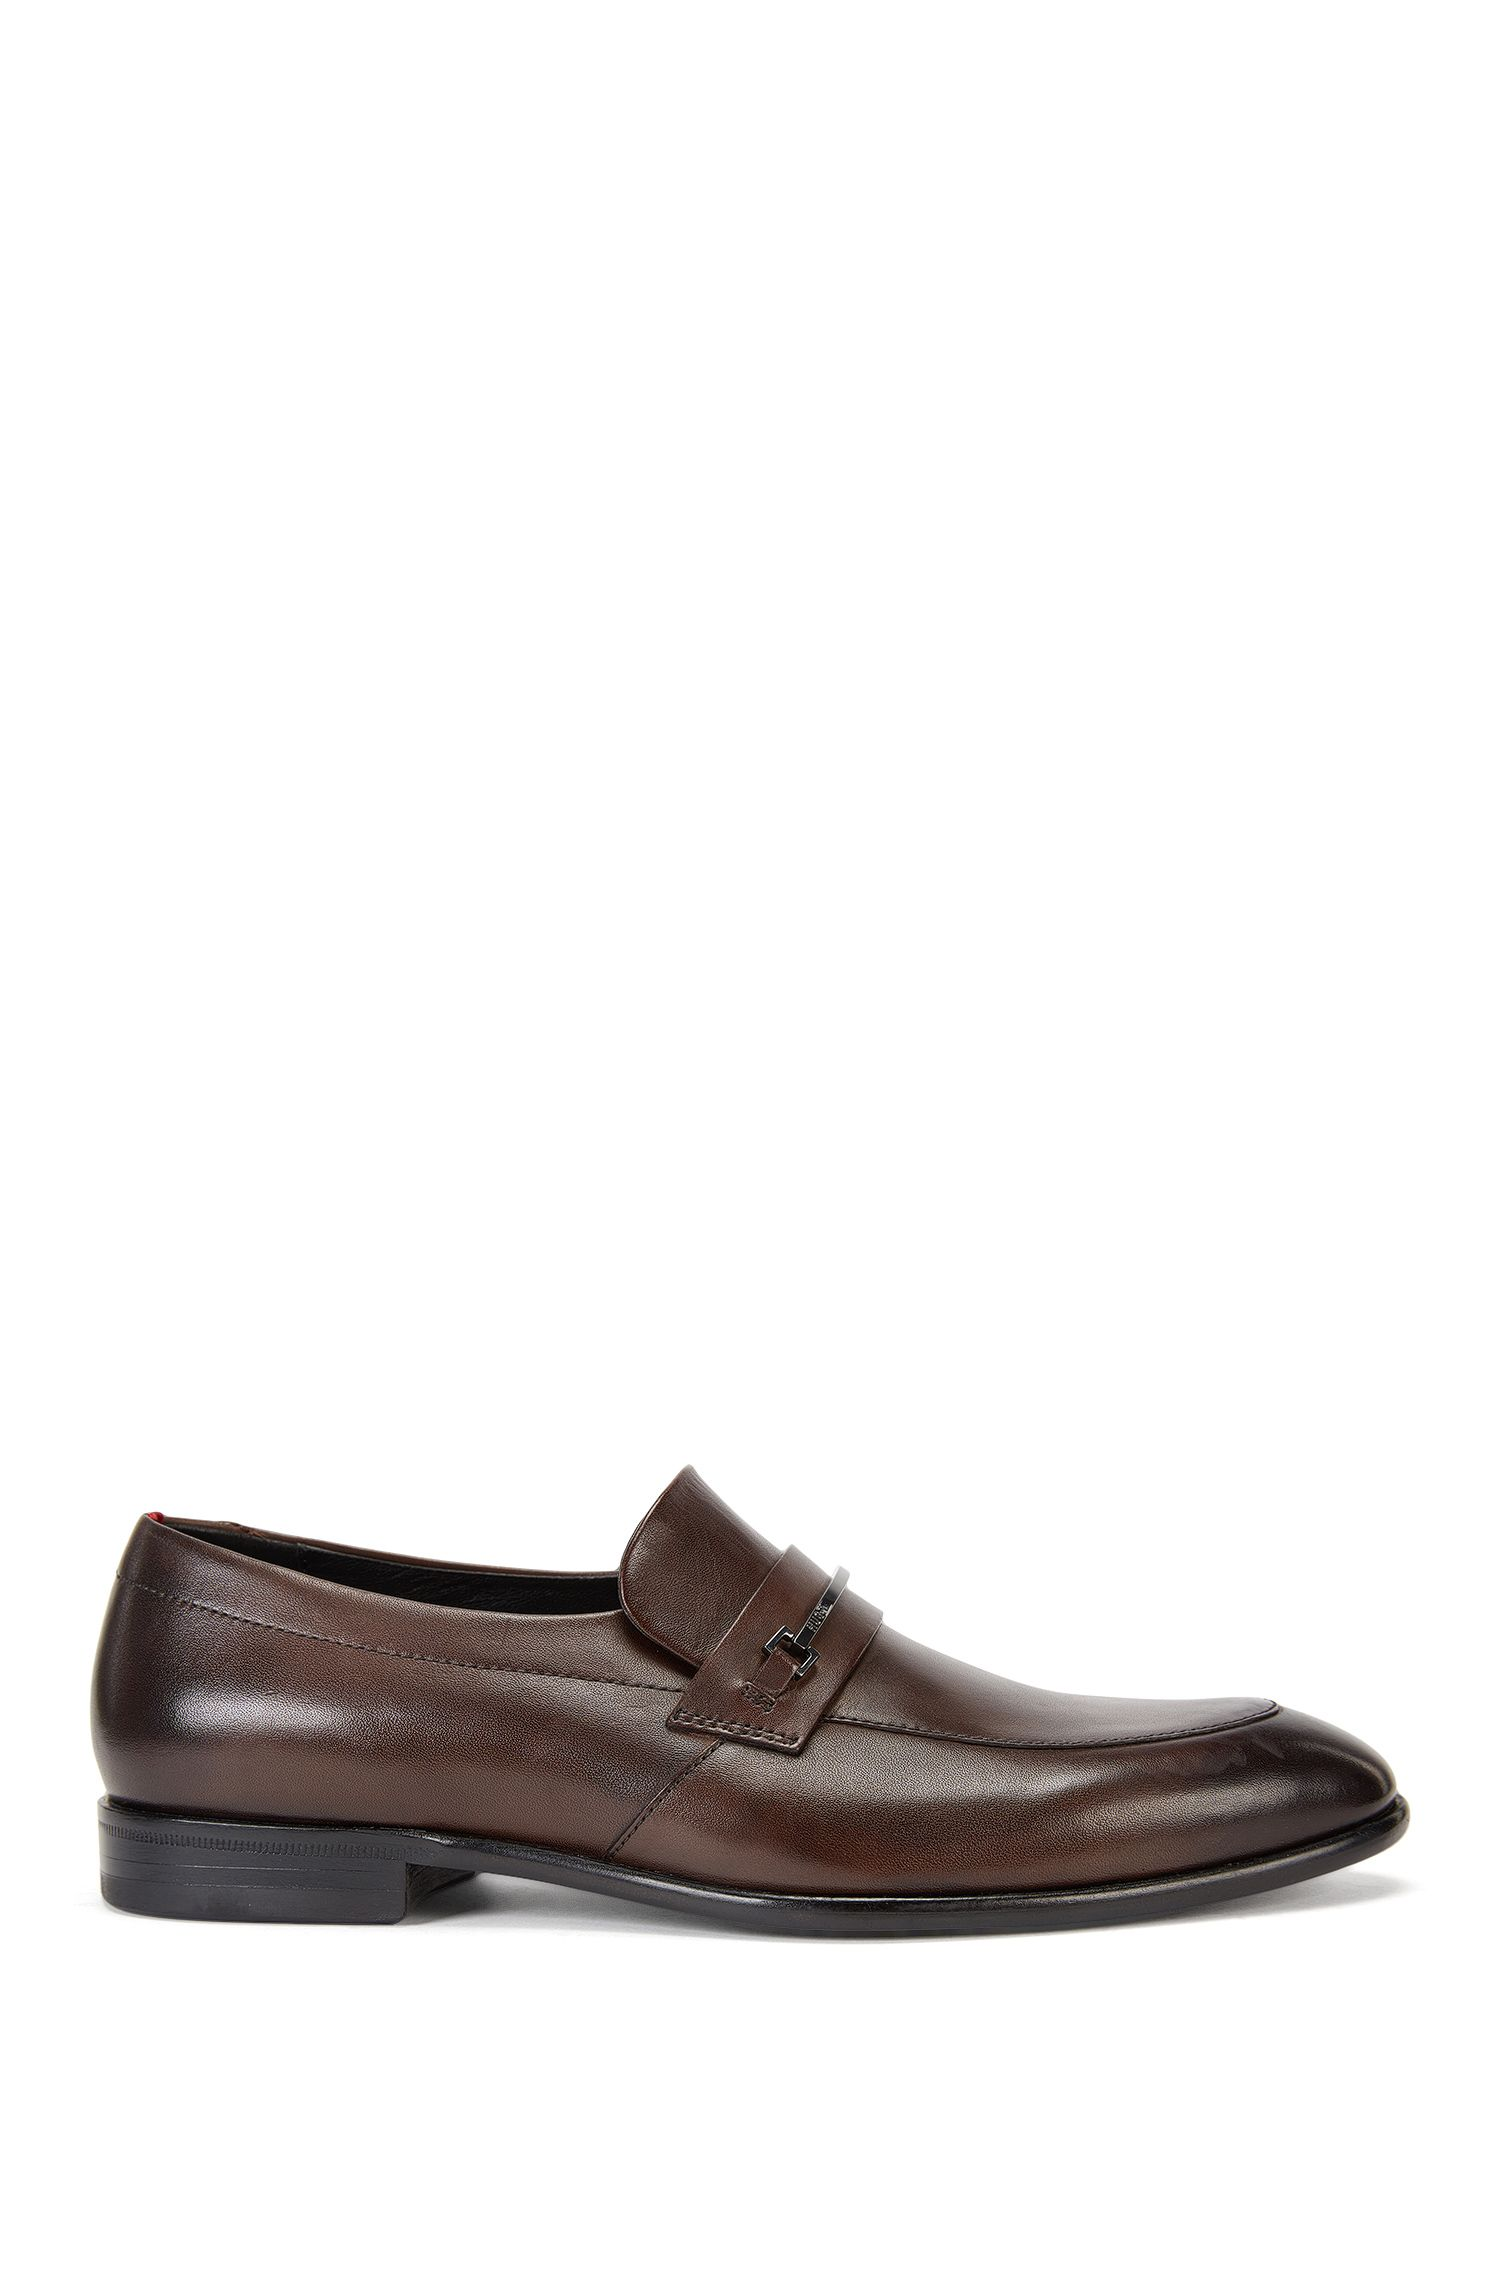 Leather loafers with branded metal bit